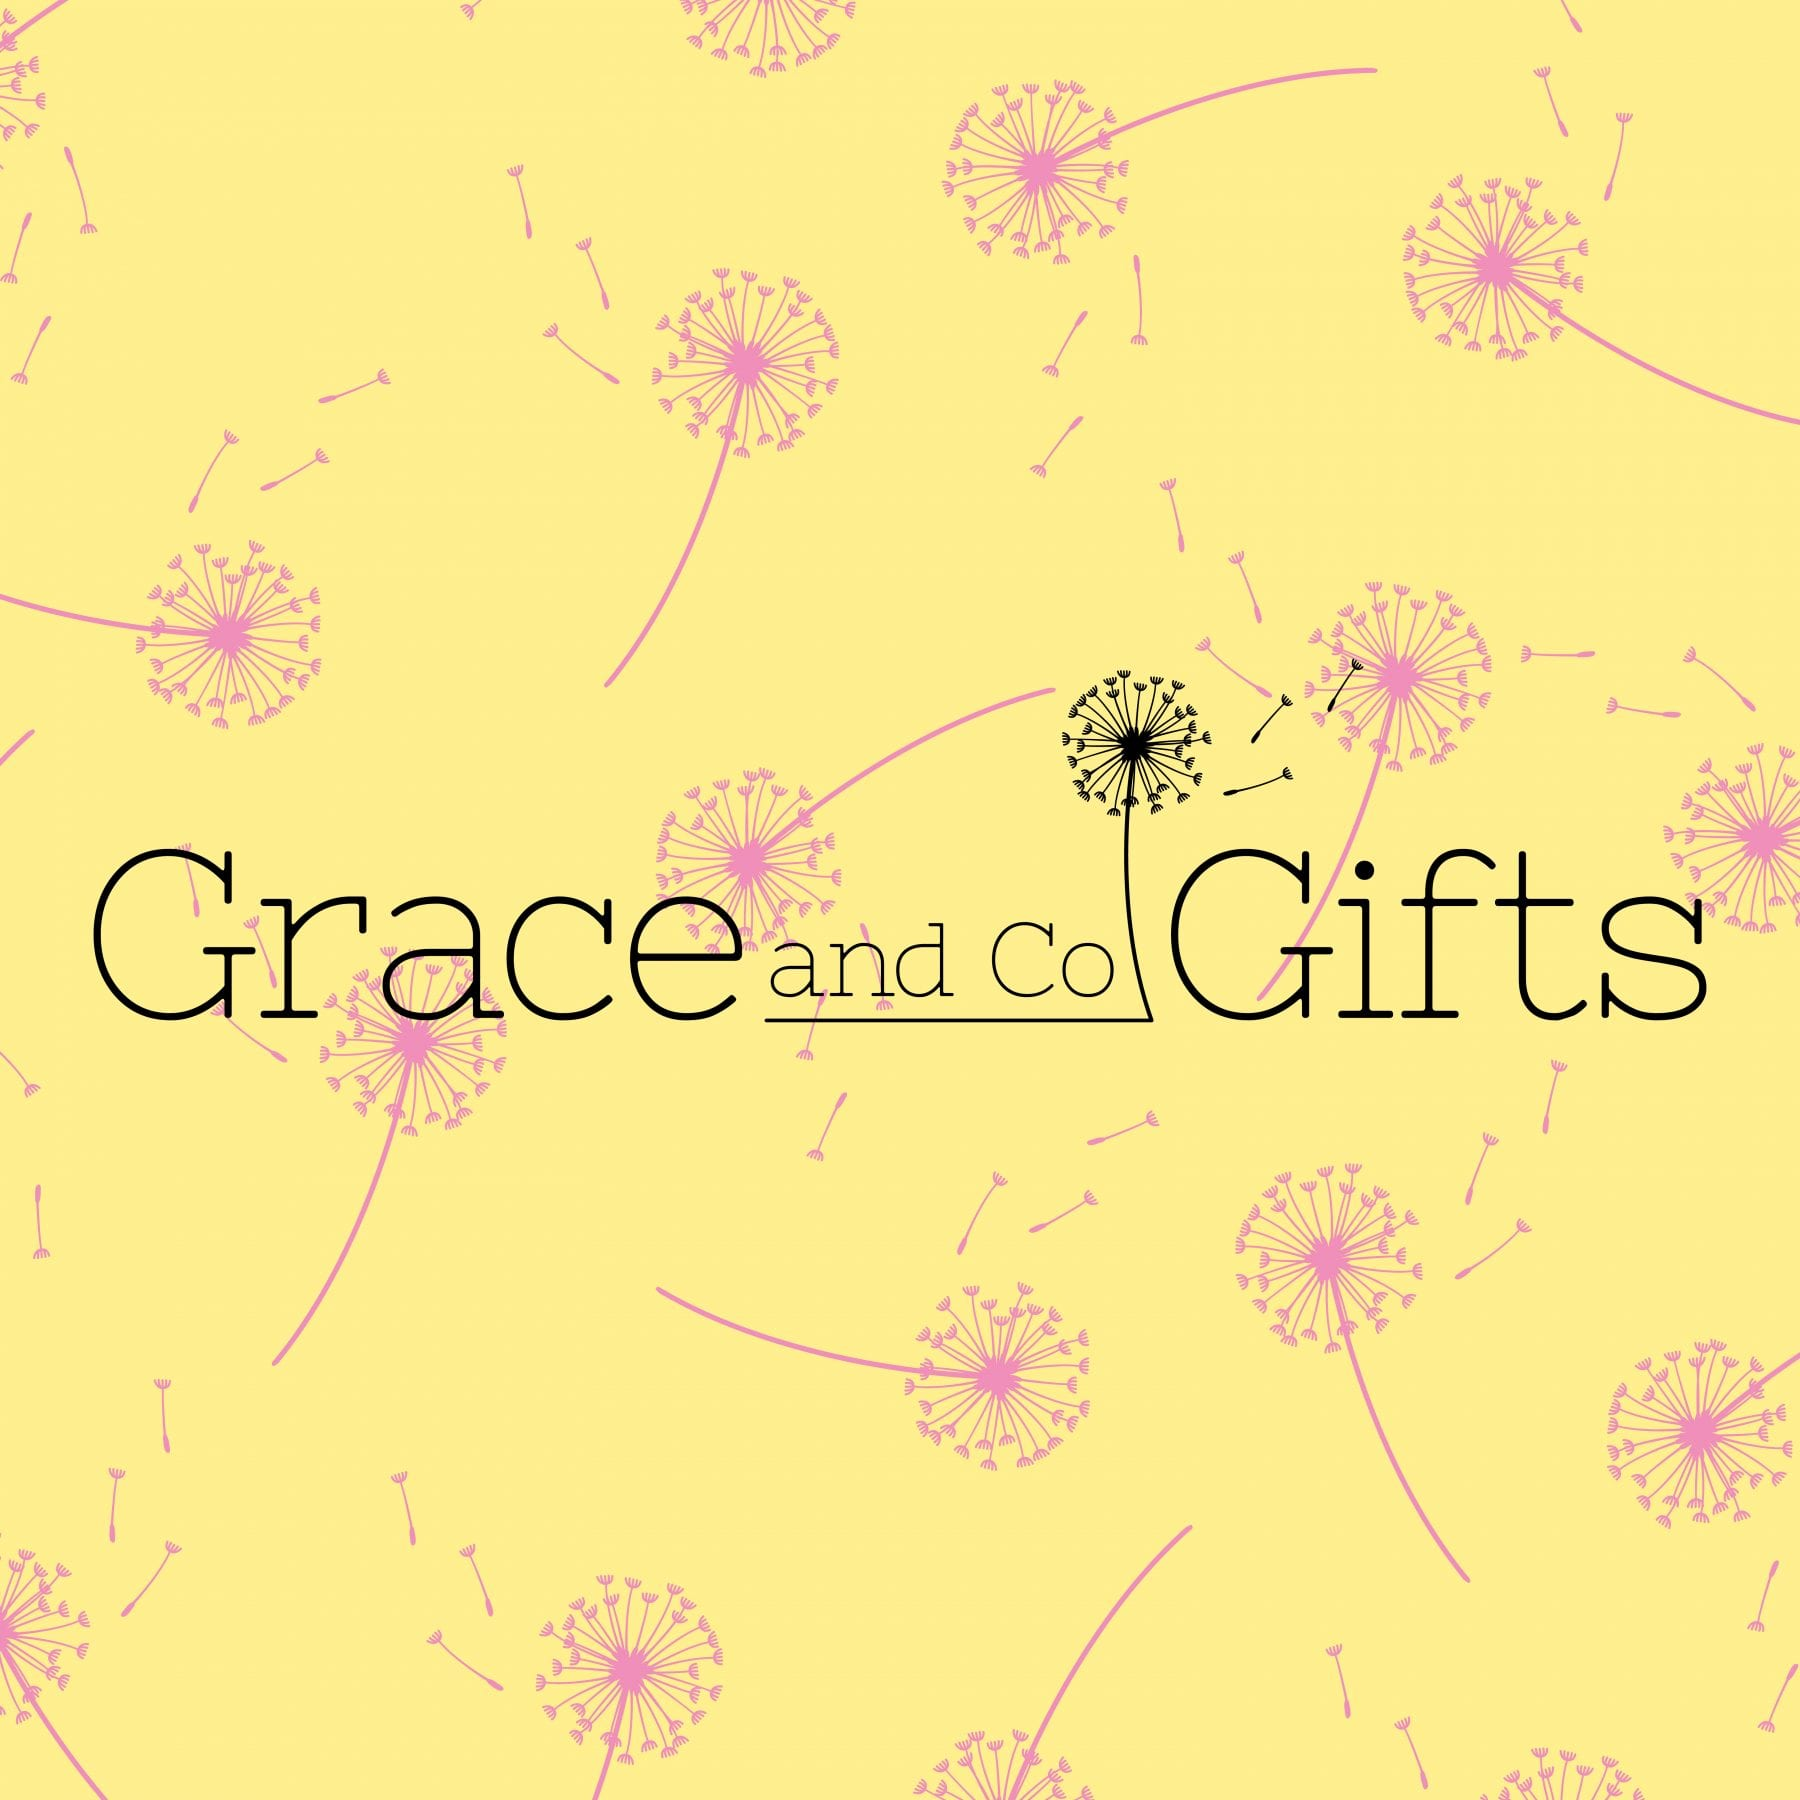 Grace and go gifts logo design by graphic designer and brand designer Jessica Croome of Perth WA